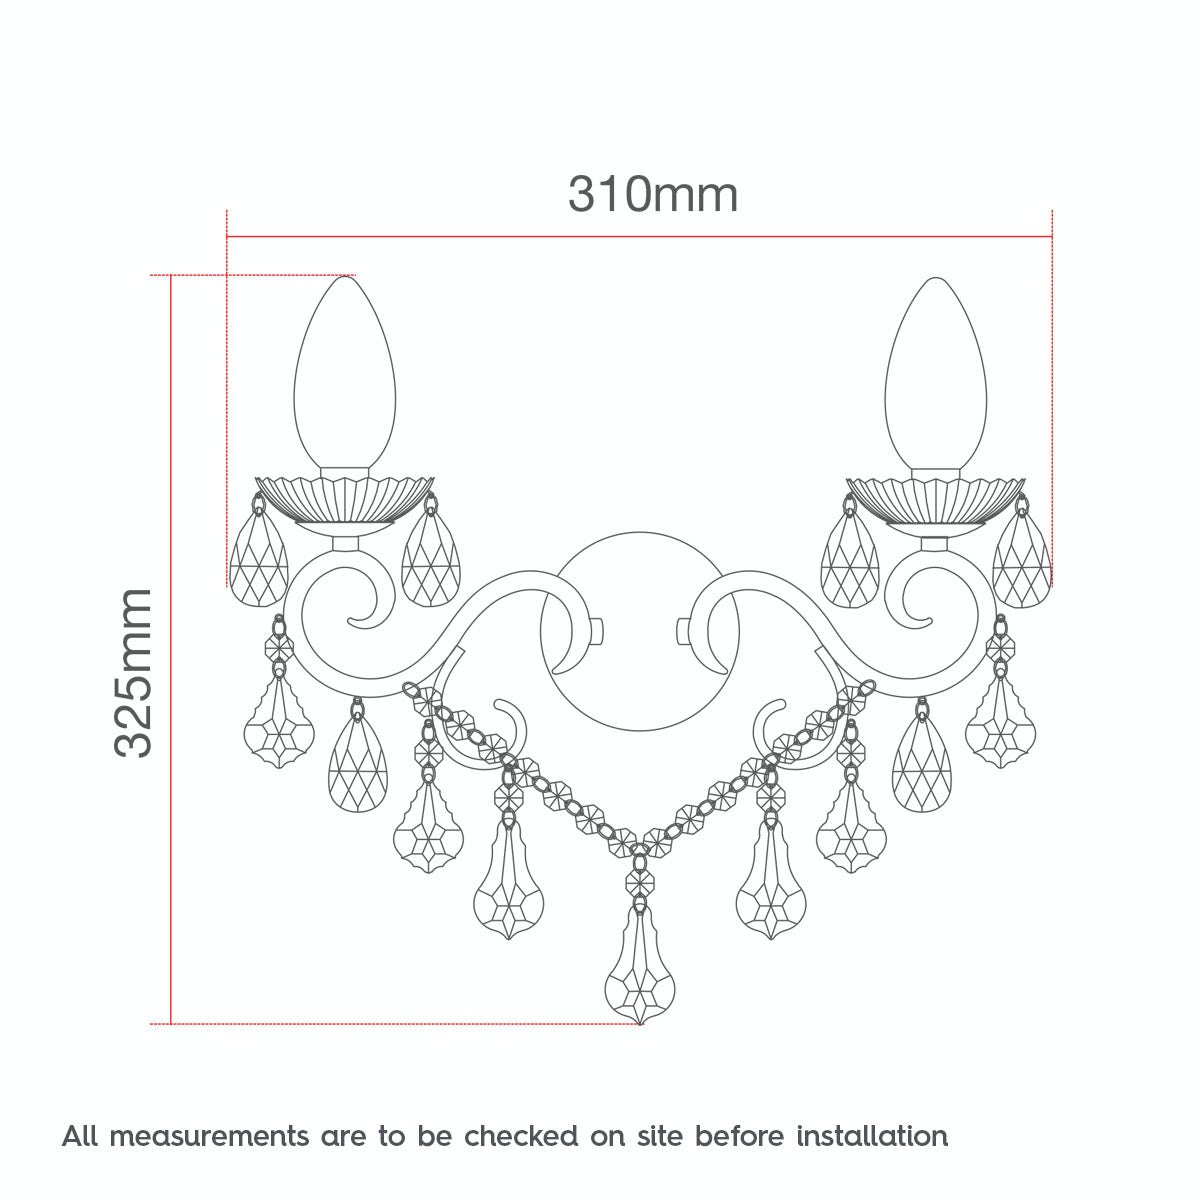 Dimensions for Solen 2 light bathroom wall light